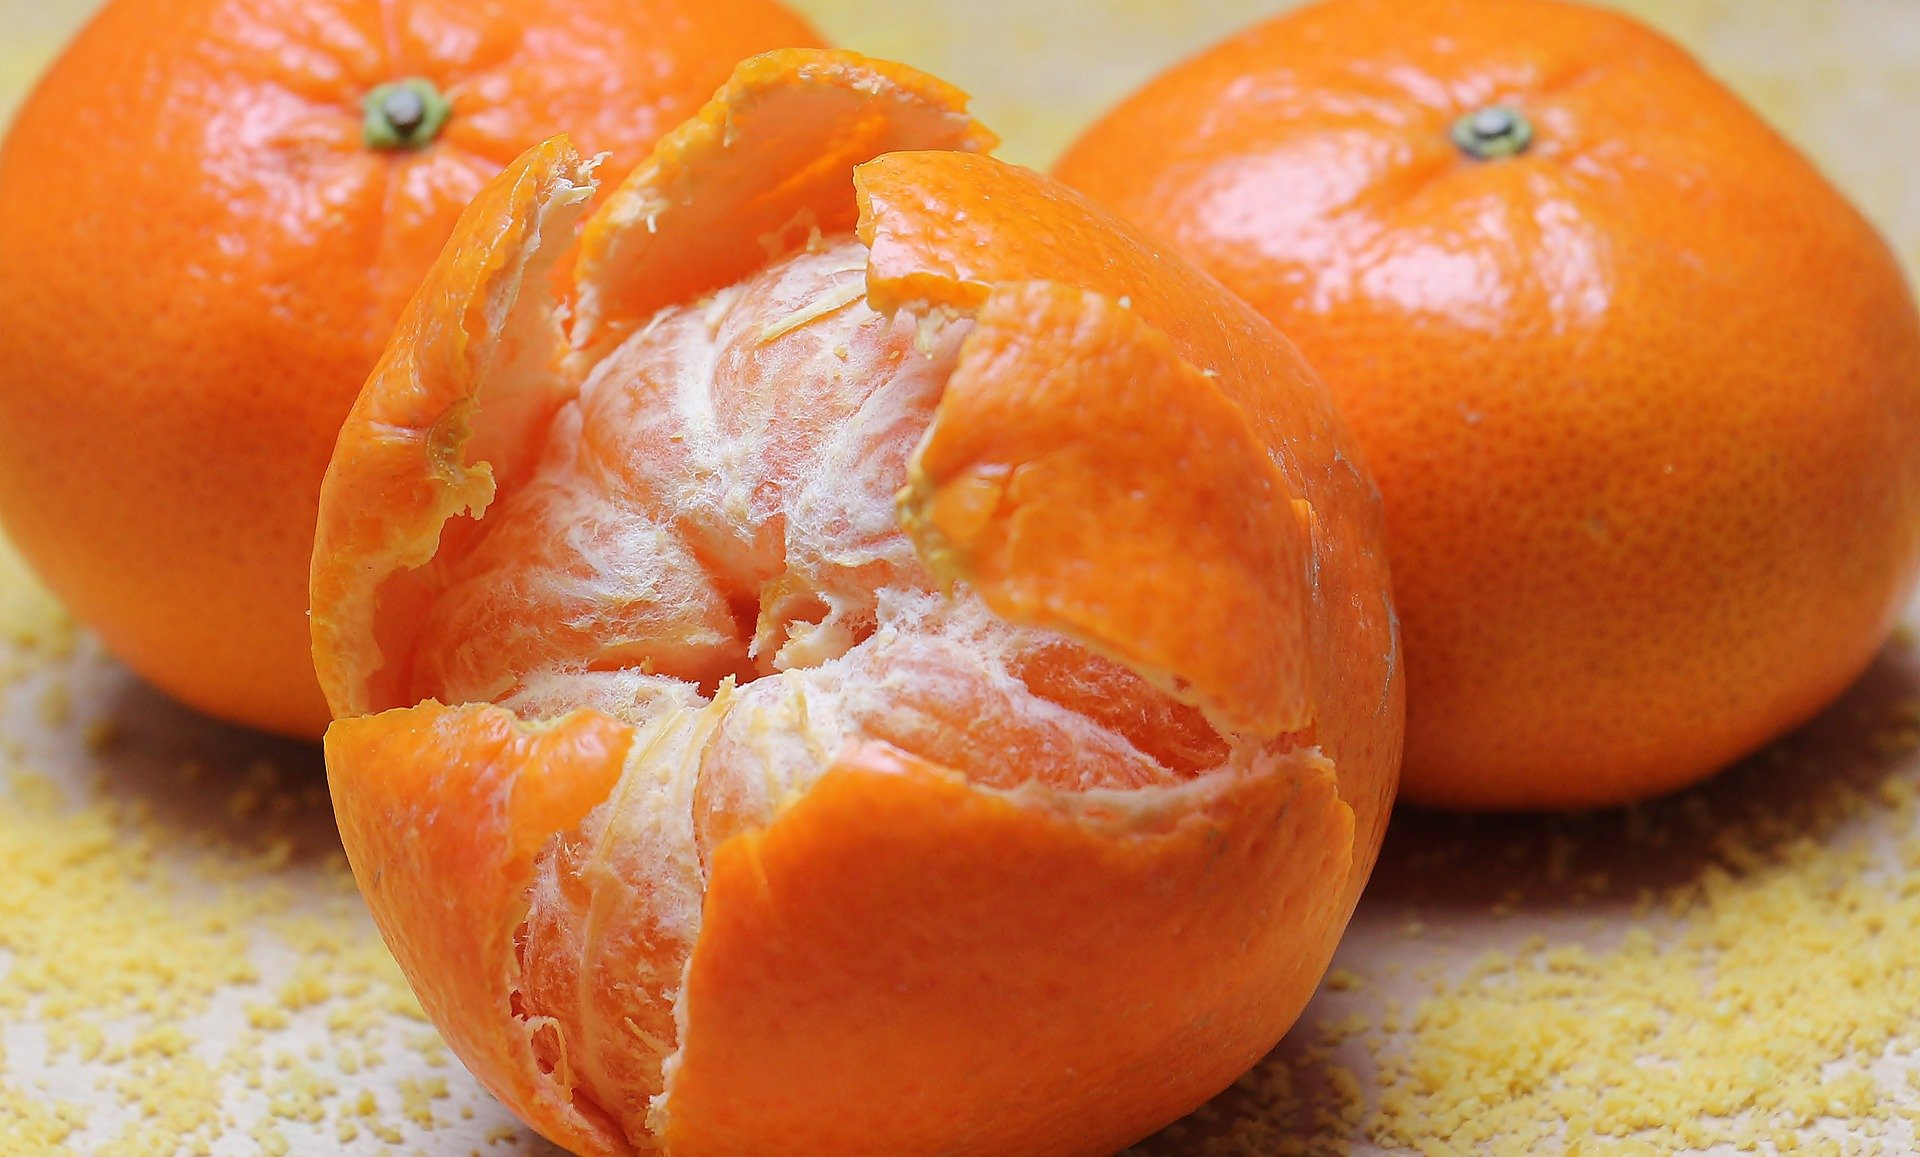 Tangerines for vitamin c as adhd supplement.